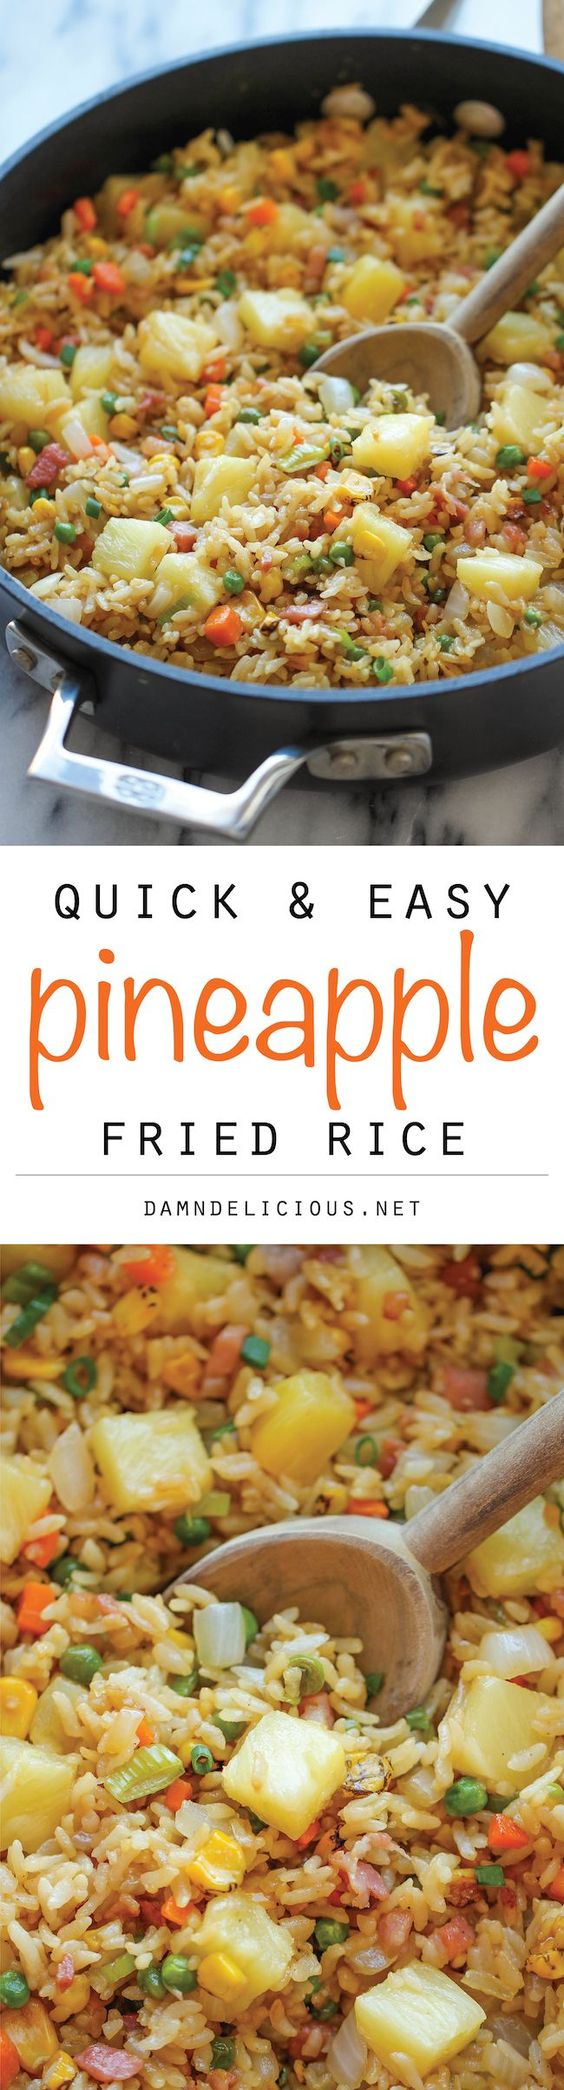 rice easy weeknight meals garlic minced olive oils rice soy sauce ...